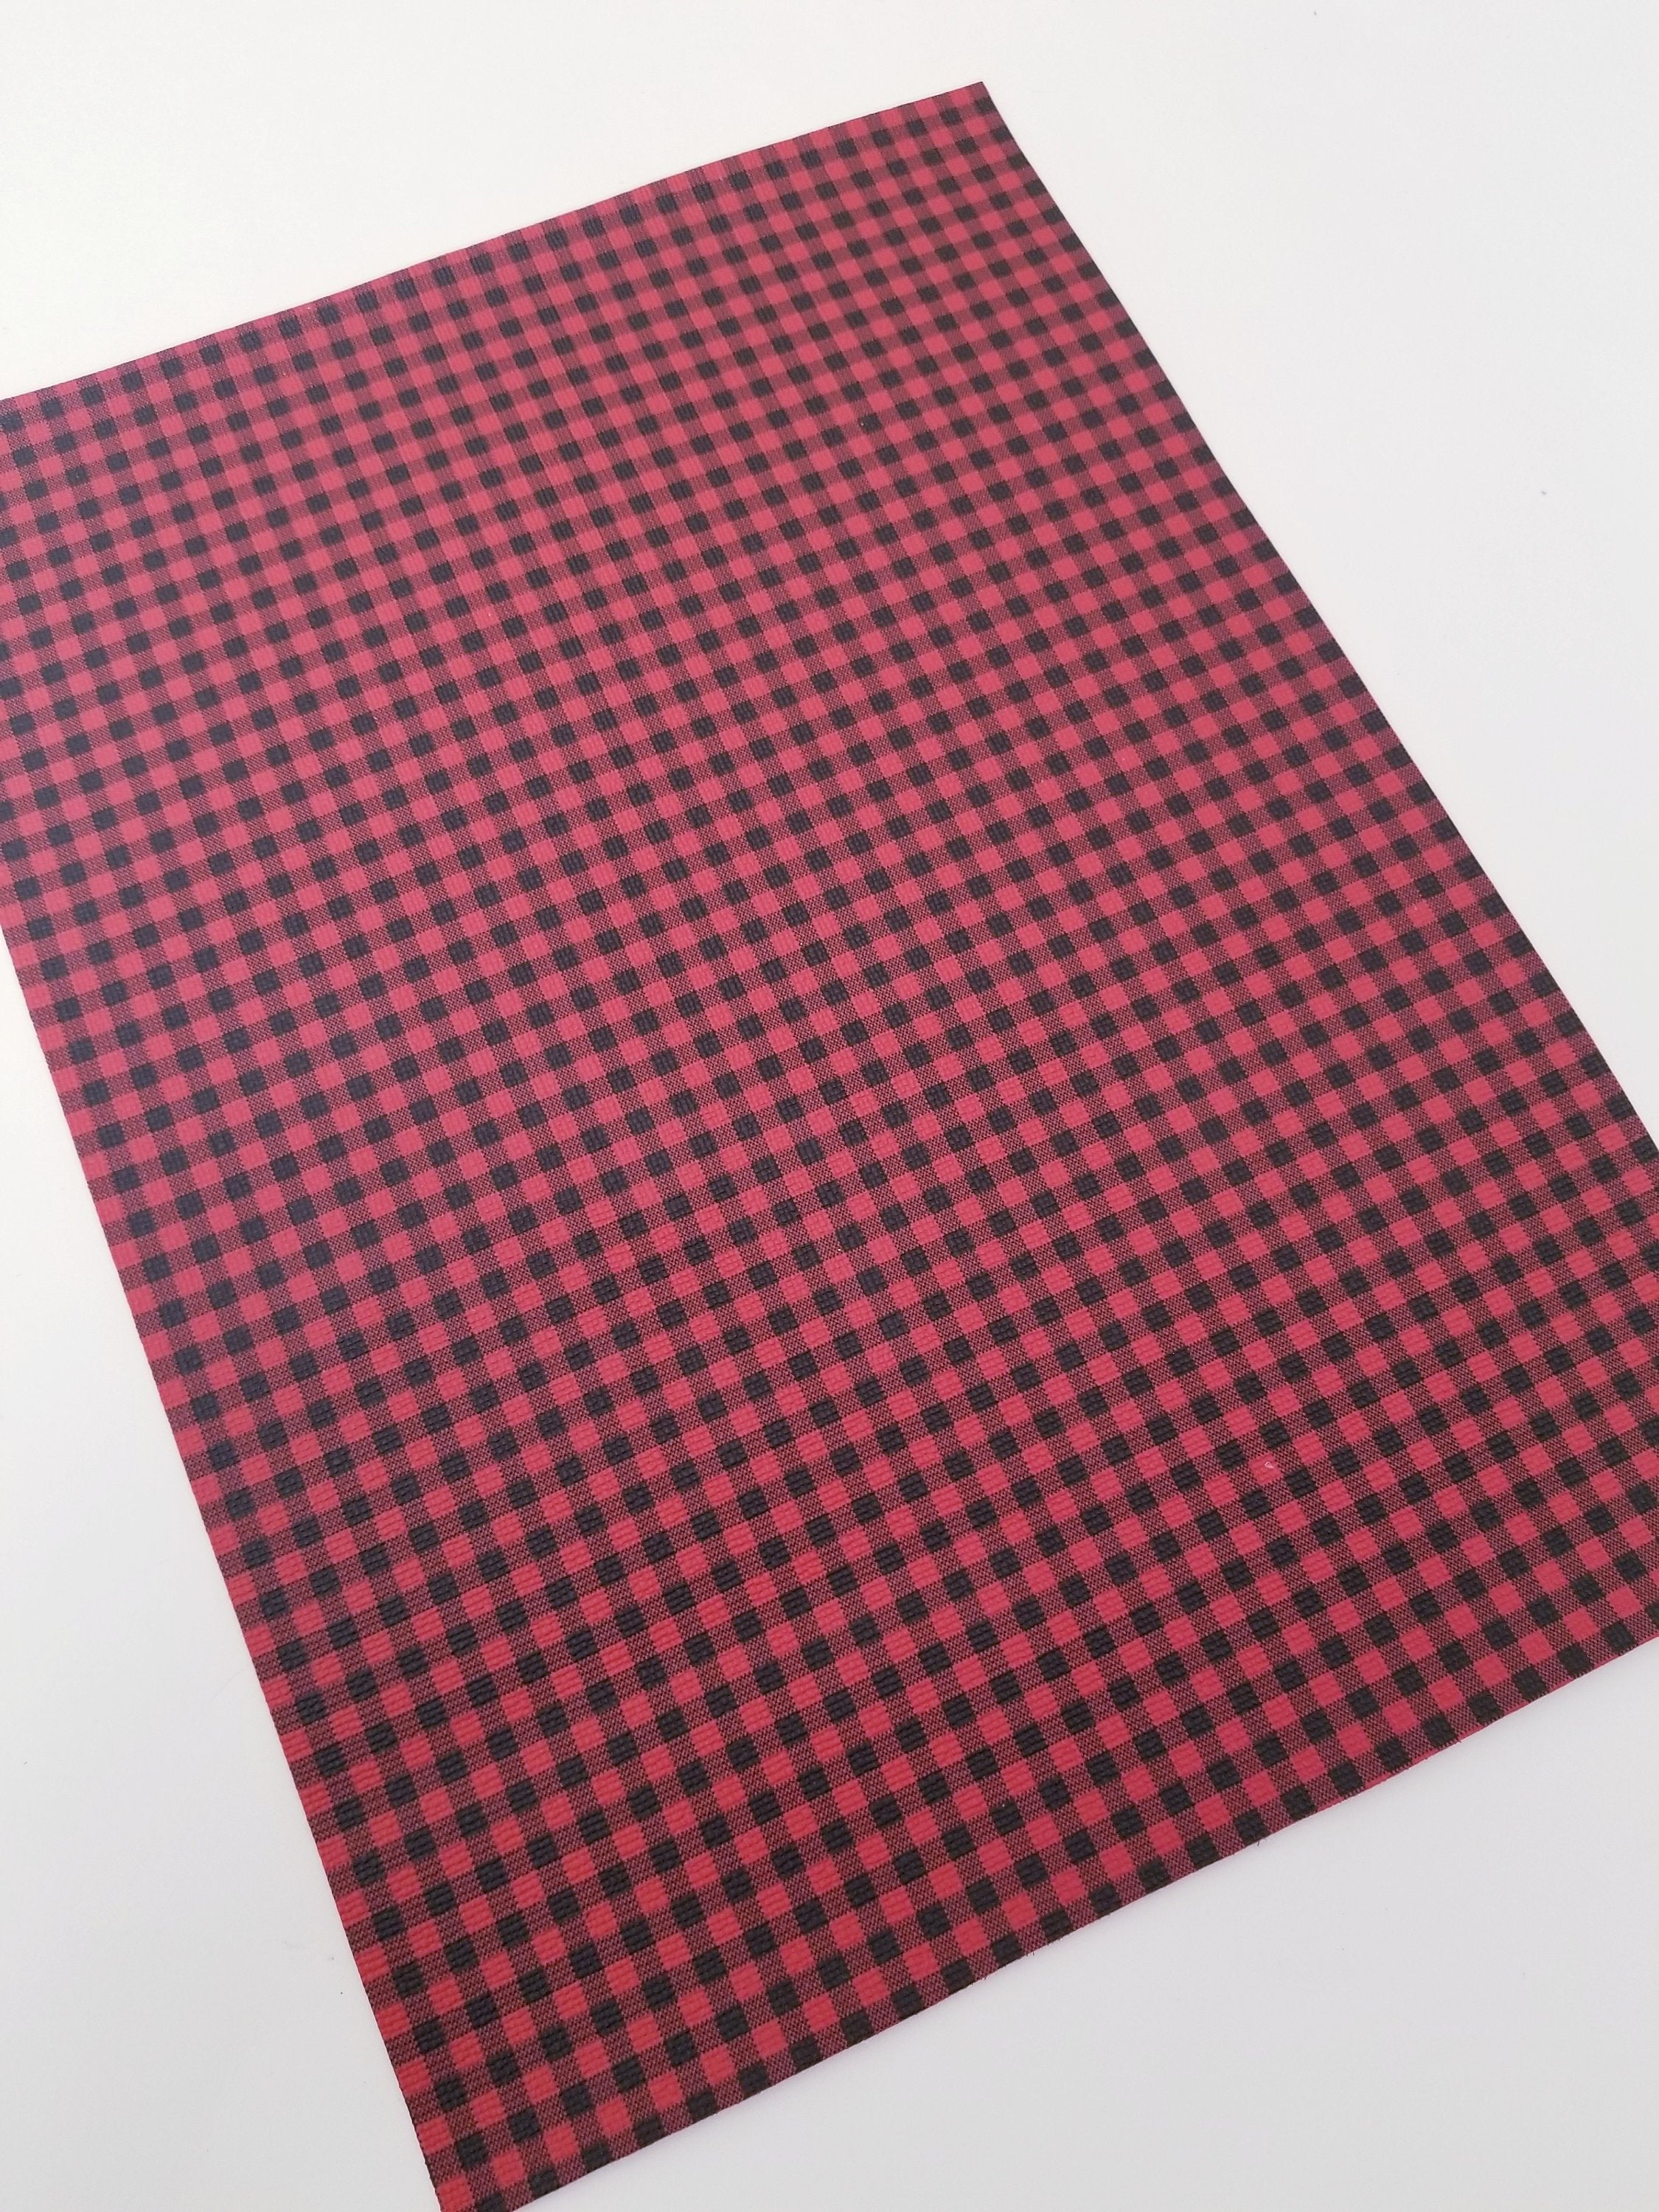 faux leather sheet,8x11 faux leather vegan leather faux leather Regular BUFFALO PLAID Red /& black faux leather faux leather fabric